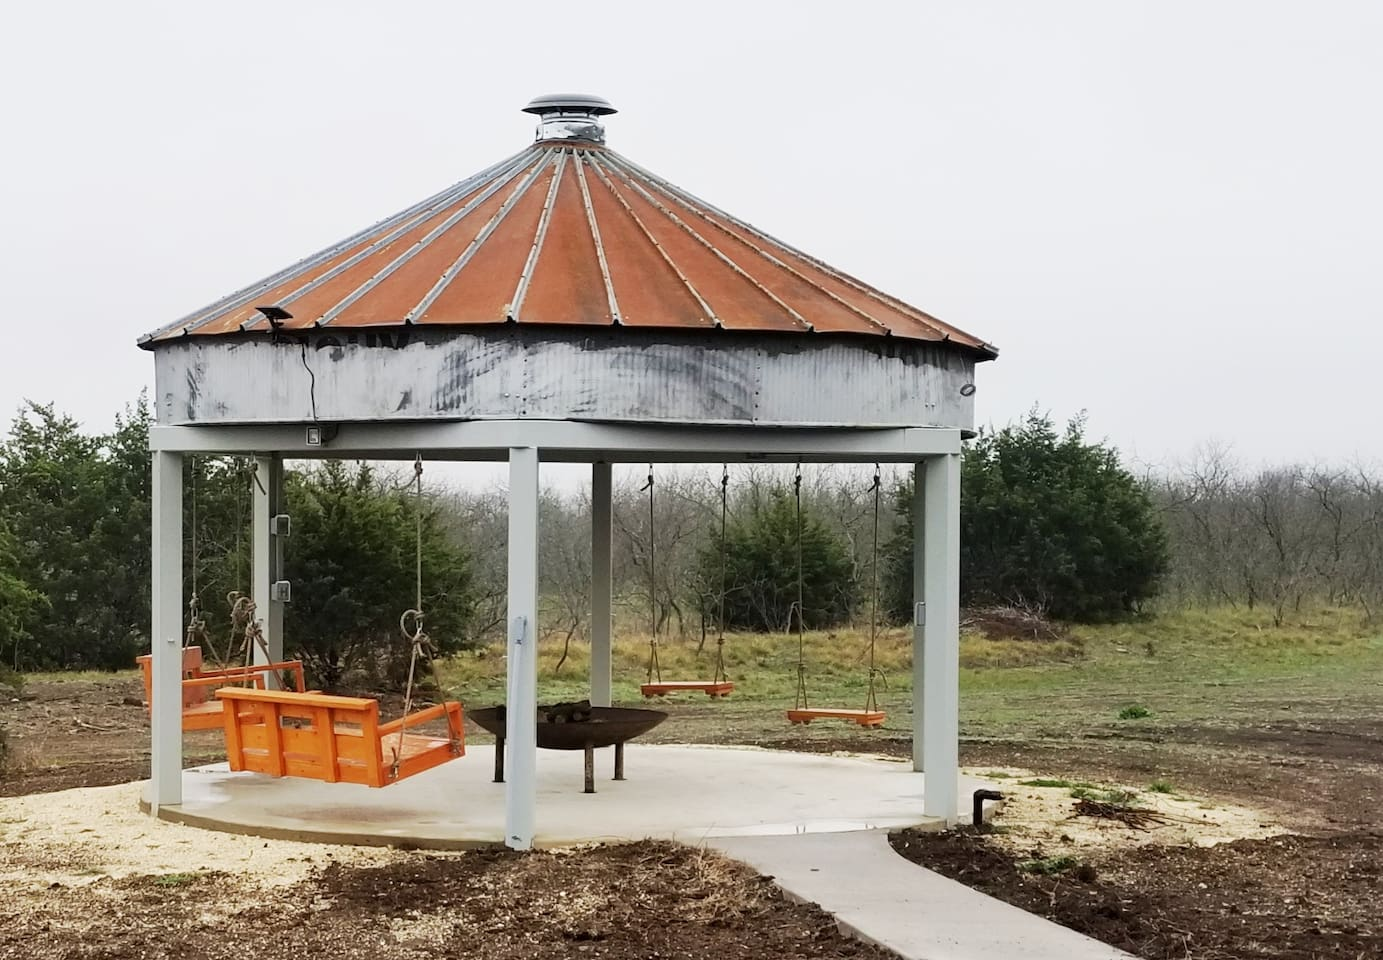 Gazebo with Swings and Fire pit - Shared Space